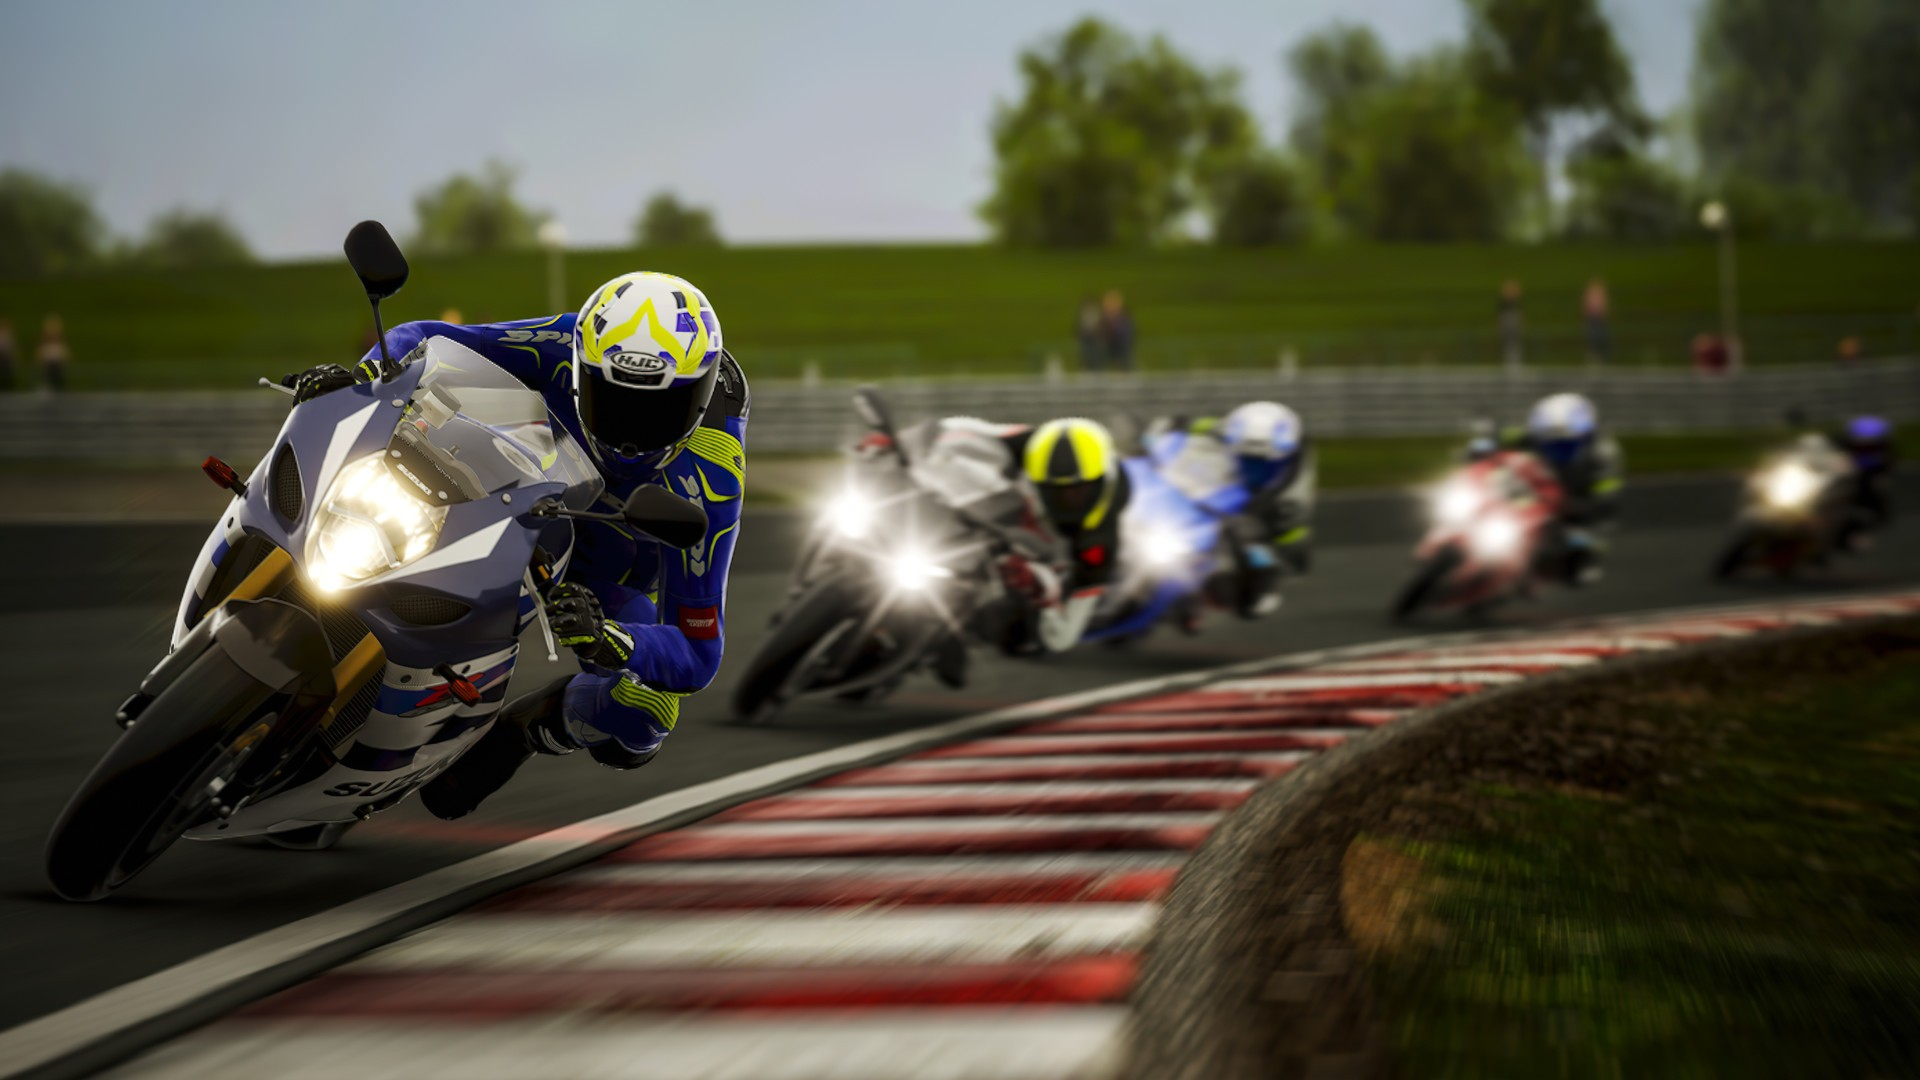 Ride 4 Review Bonus Stage Is The World S Leading Source For Playstation 5 Xbox Series X Nintendo Switch Pc Playstation 4 Xbox One 3ds Wii U Wii Playstation 3 Xbox 360